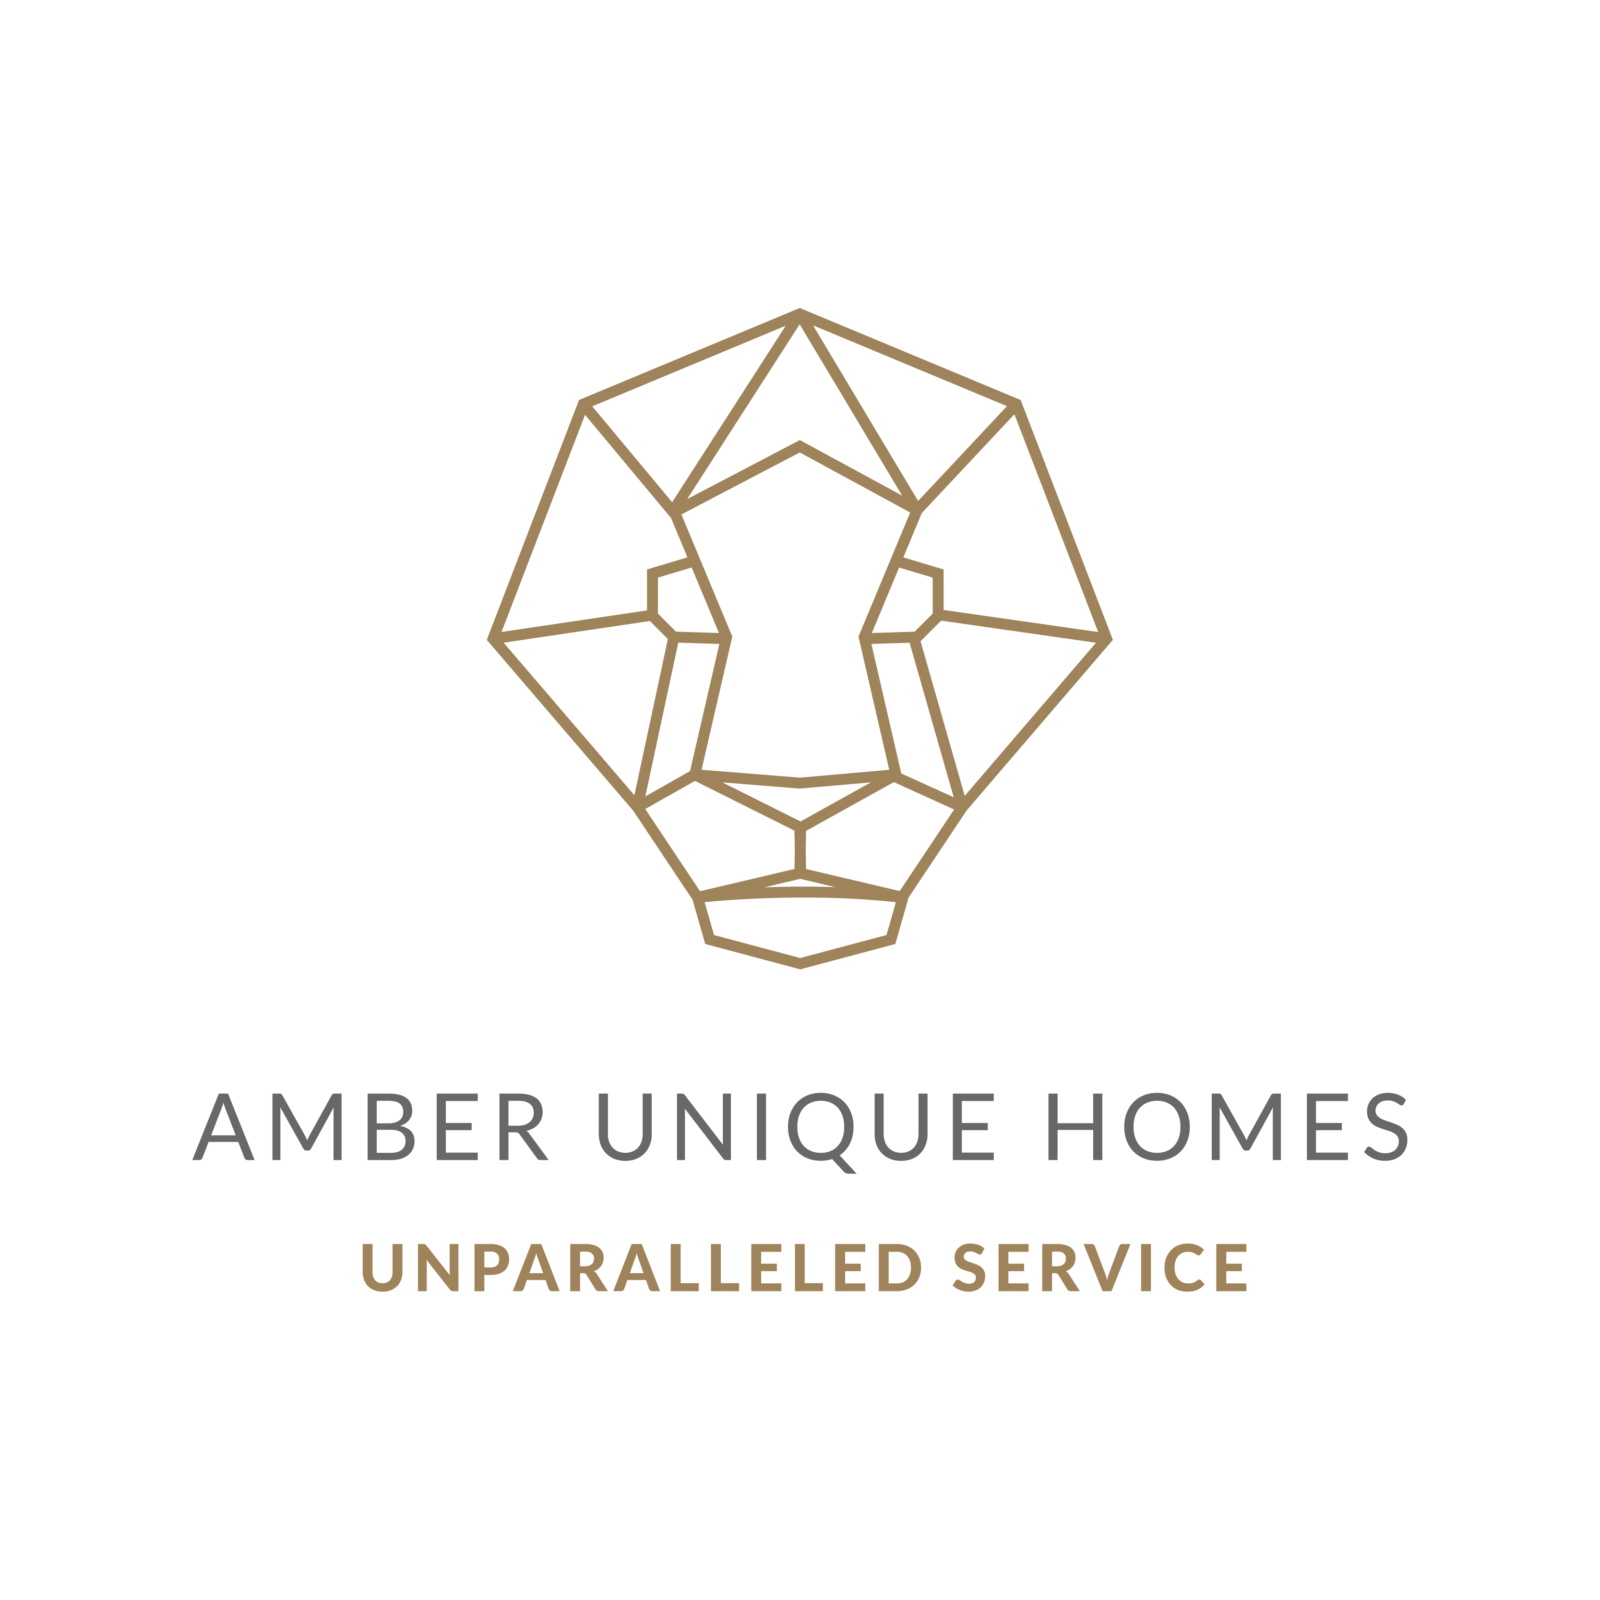 Amber Unique Homes - Unparalleled Service